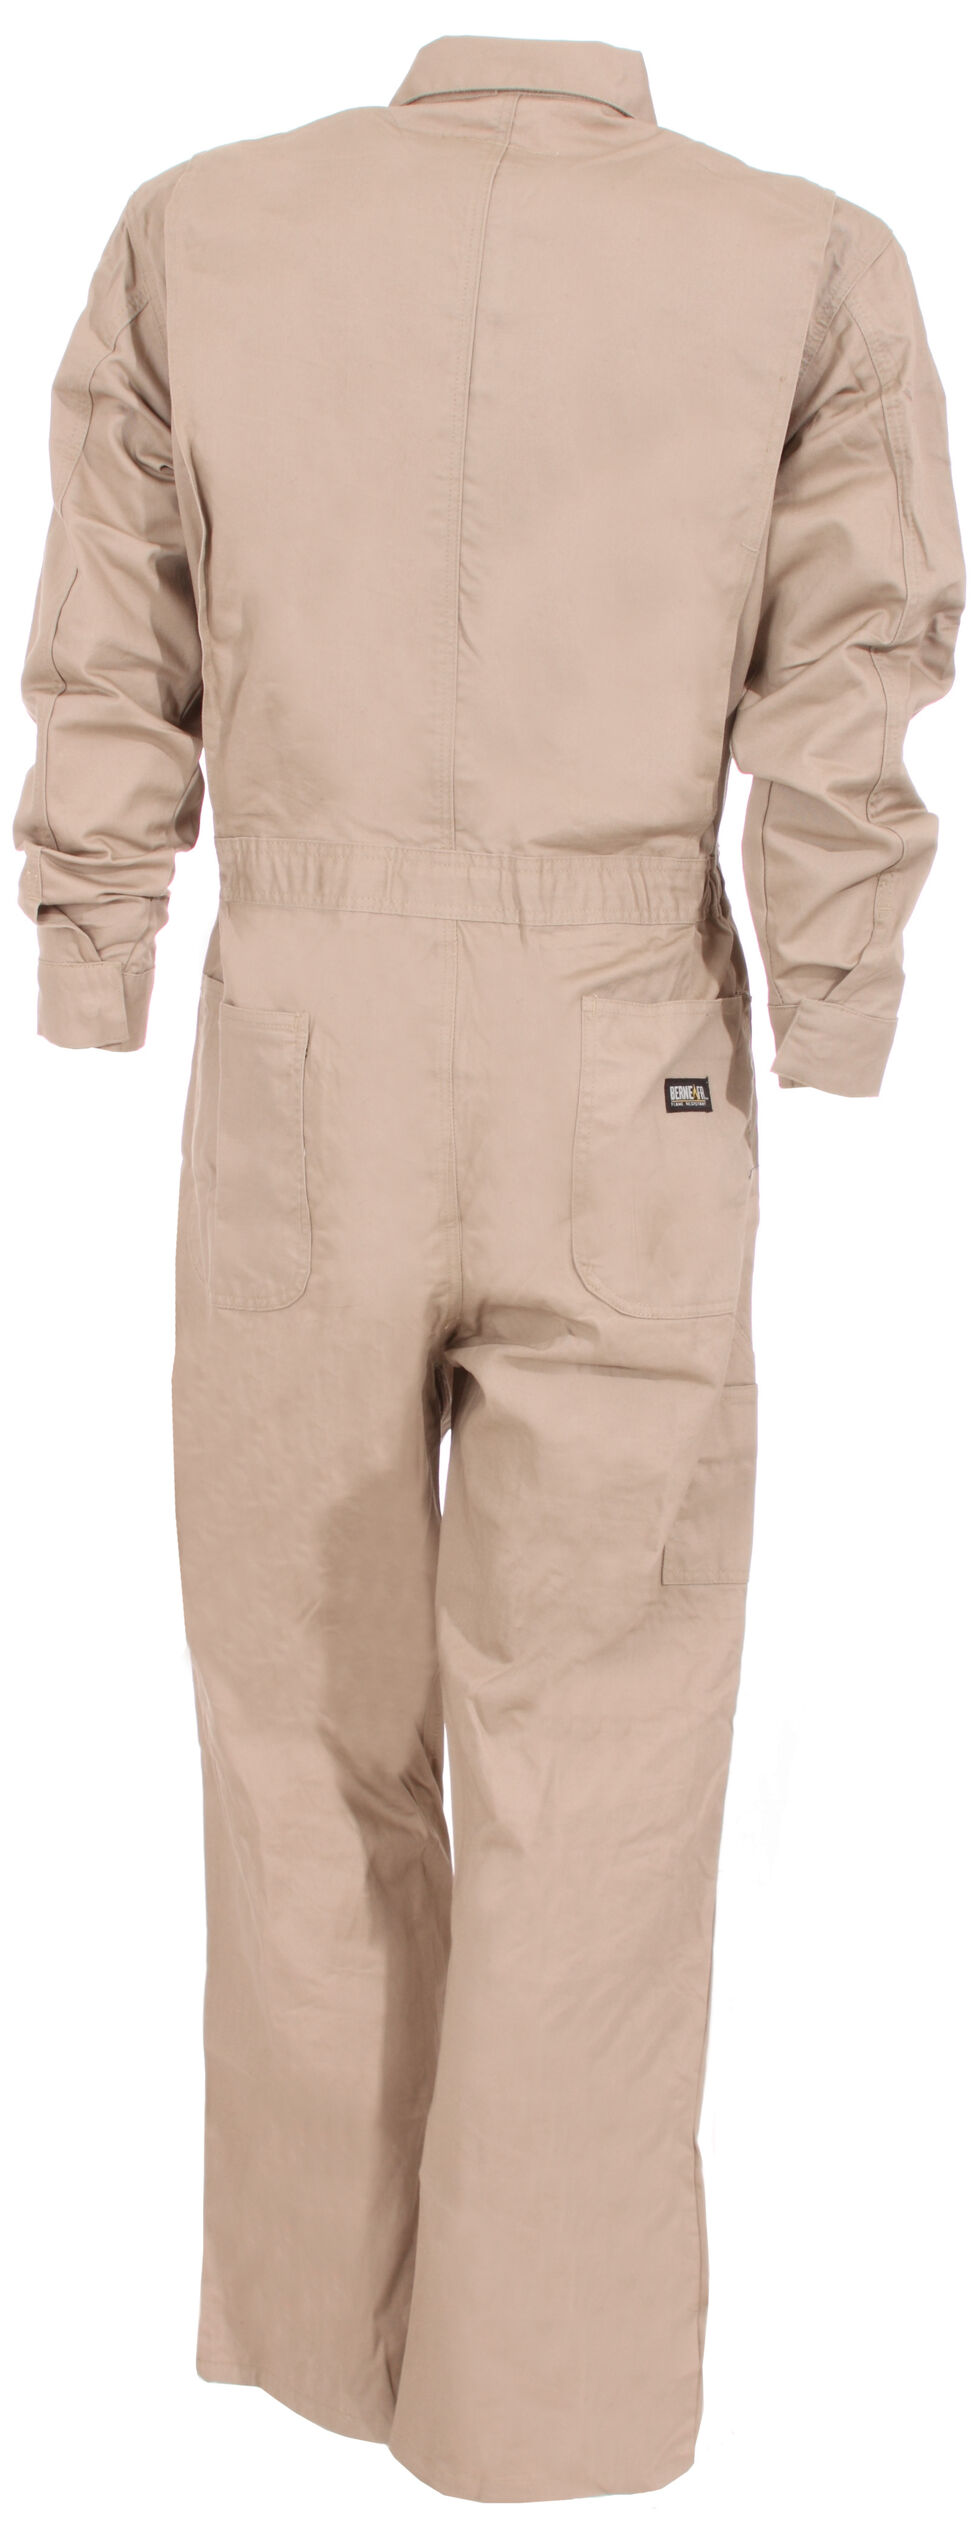 Berne Flame Resistant Deluxe Coveralls, Khaki, hi-res